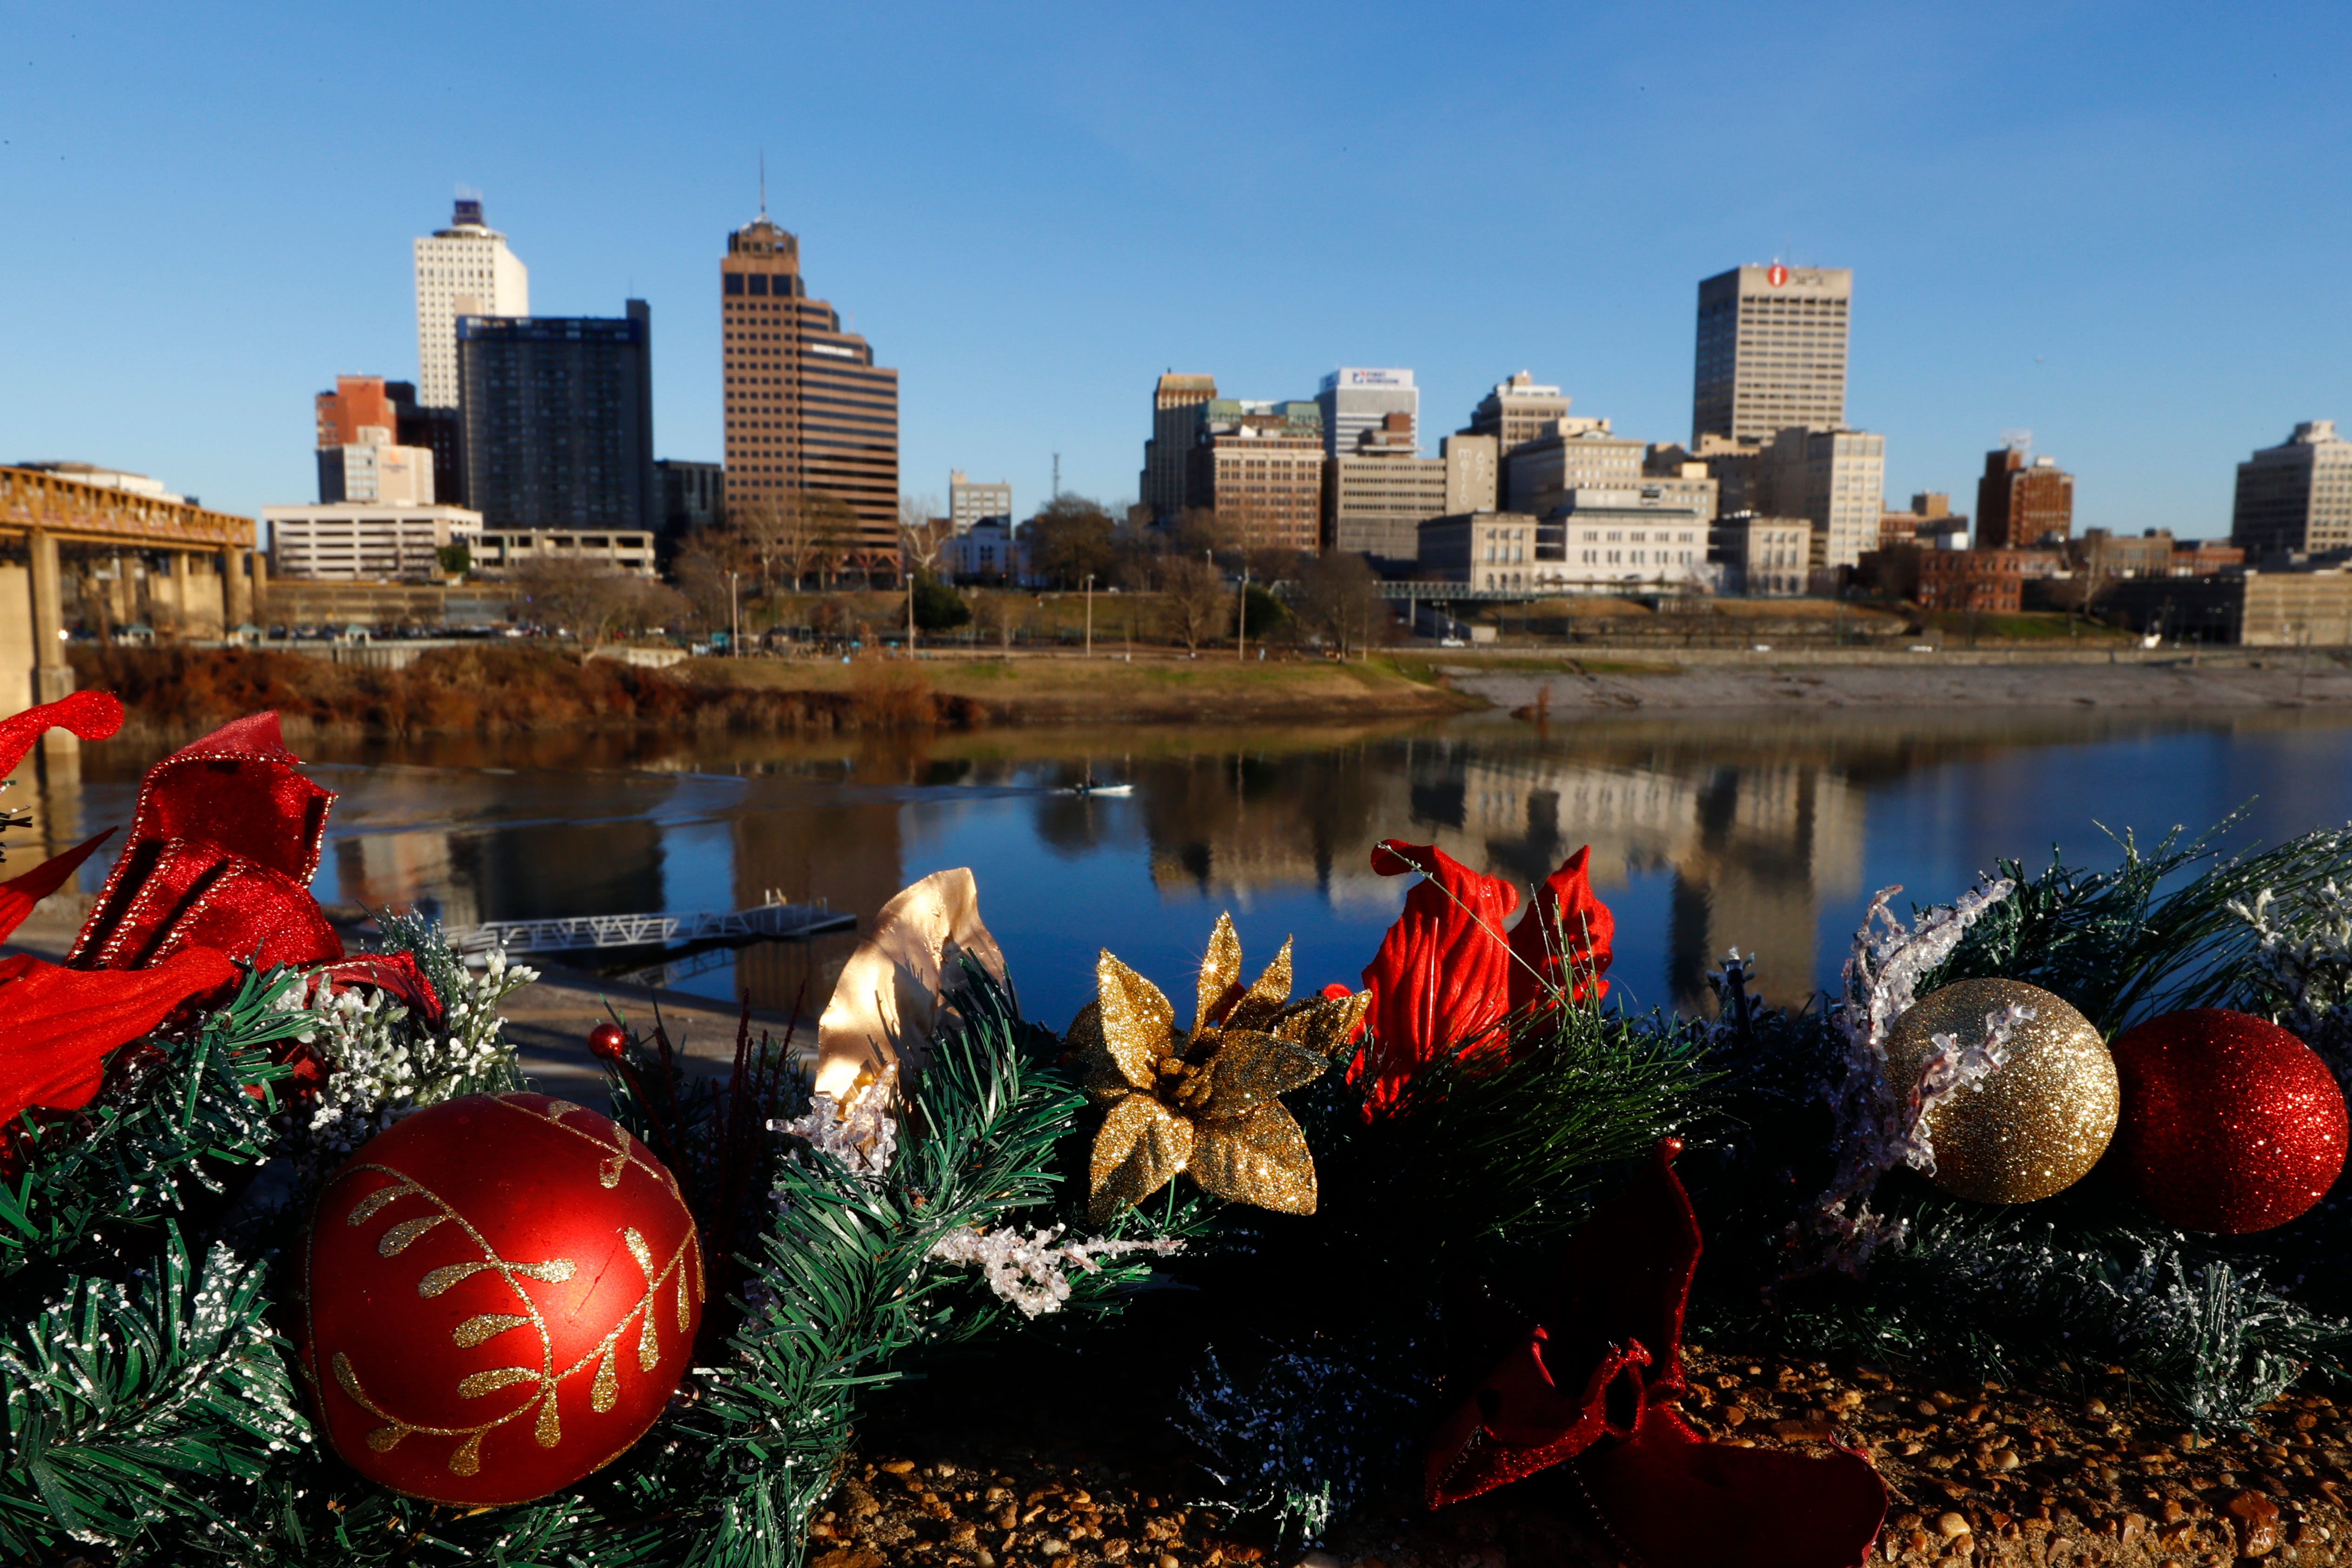 Christmas In Memphis 2020 The 901: What Memphis is asking for this Christmas